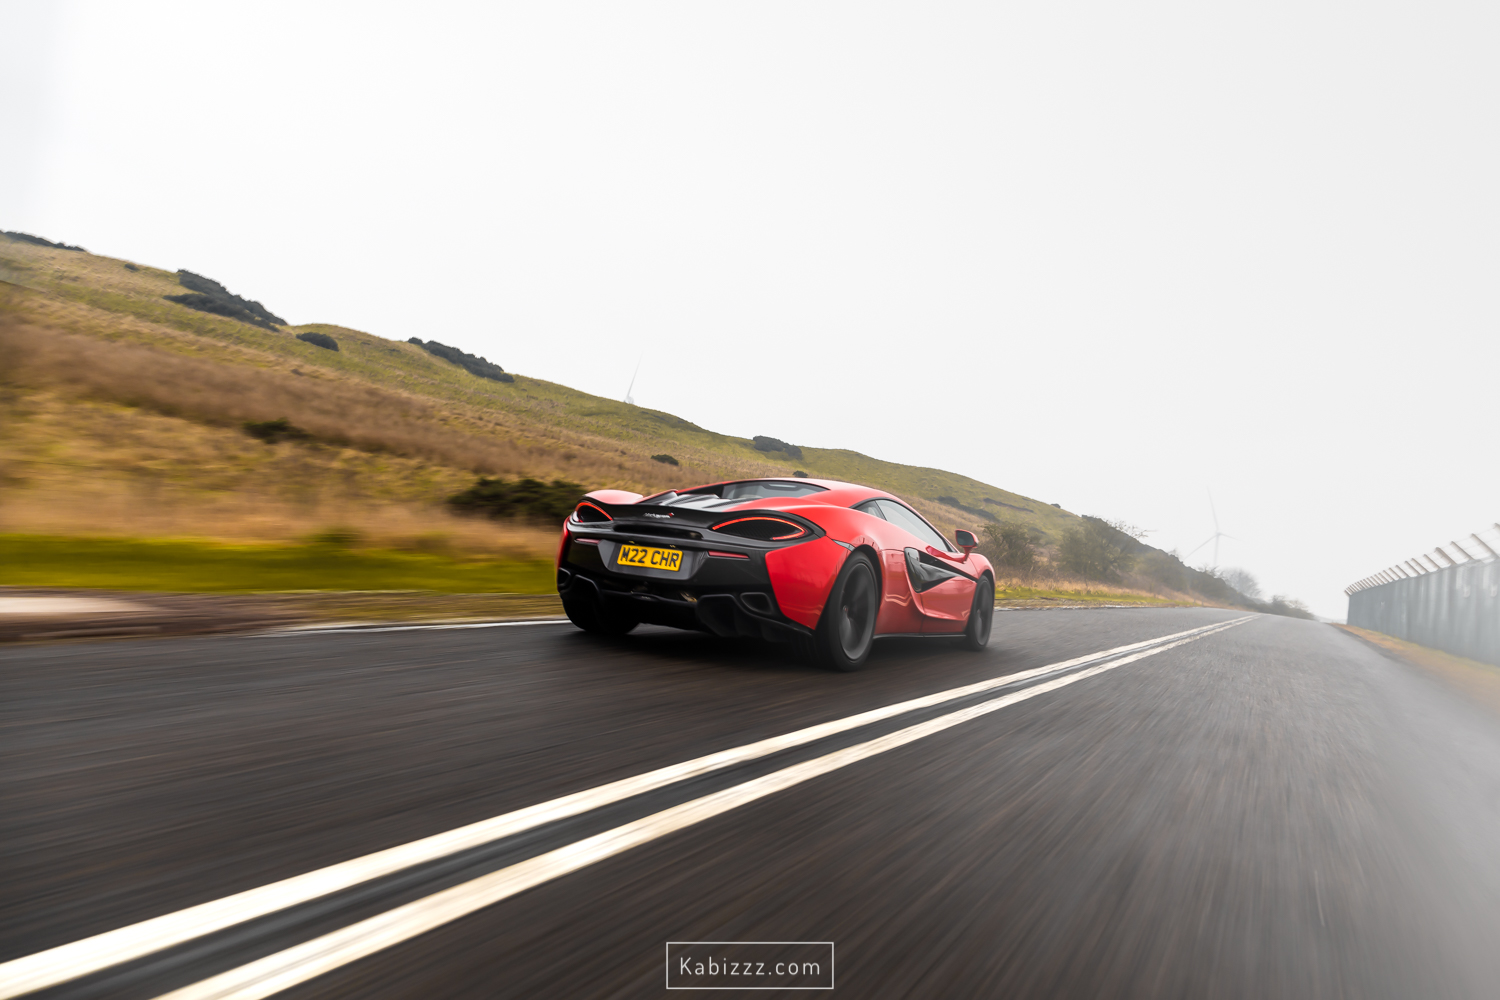 mclaren_540c_red_2019_wm_scotland_photography_automotive_photography_kabizzz-11.jpg